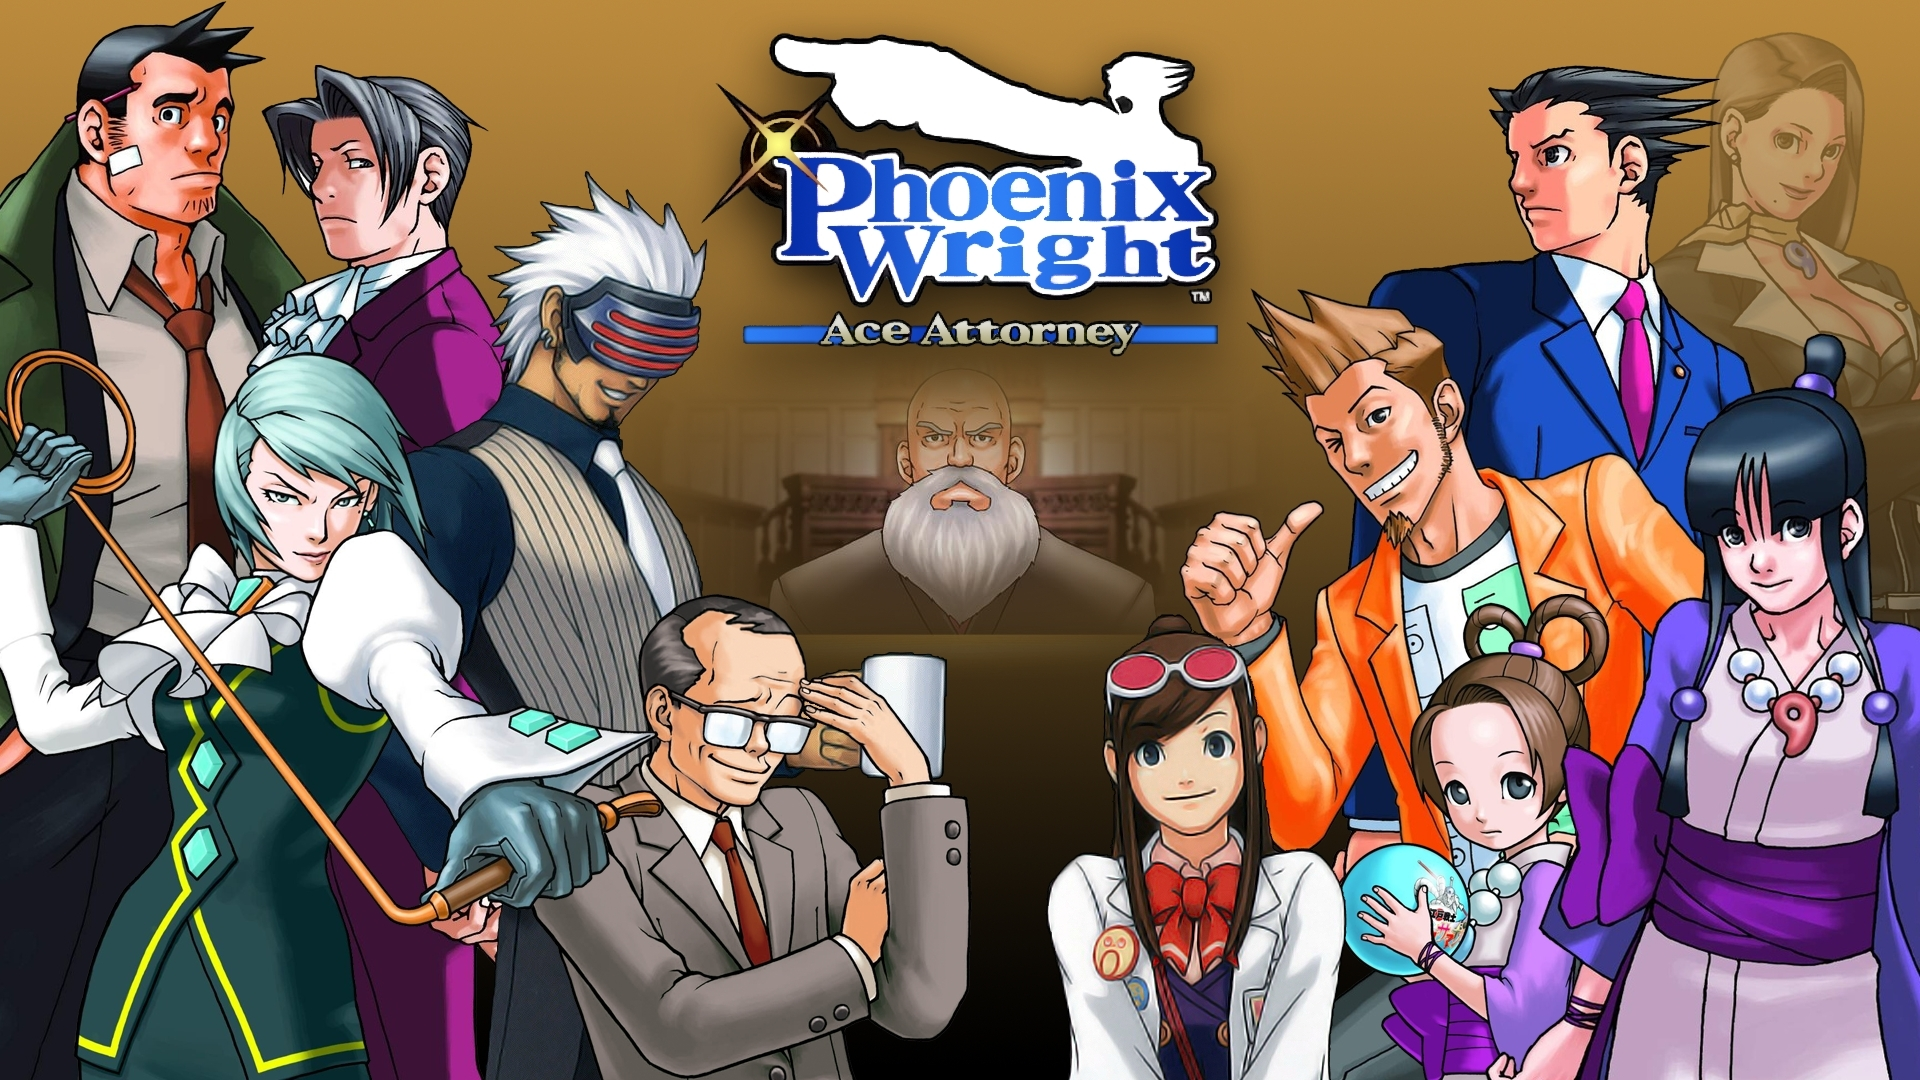 High Resolution Wallpaper | Phoenix Wright: Ace Attorney 1920x1080 px